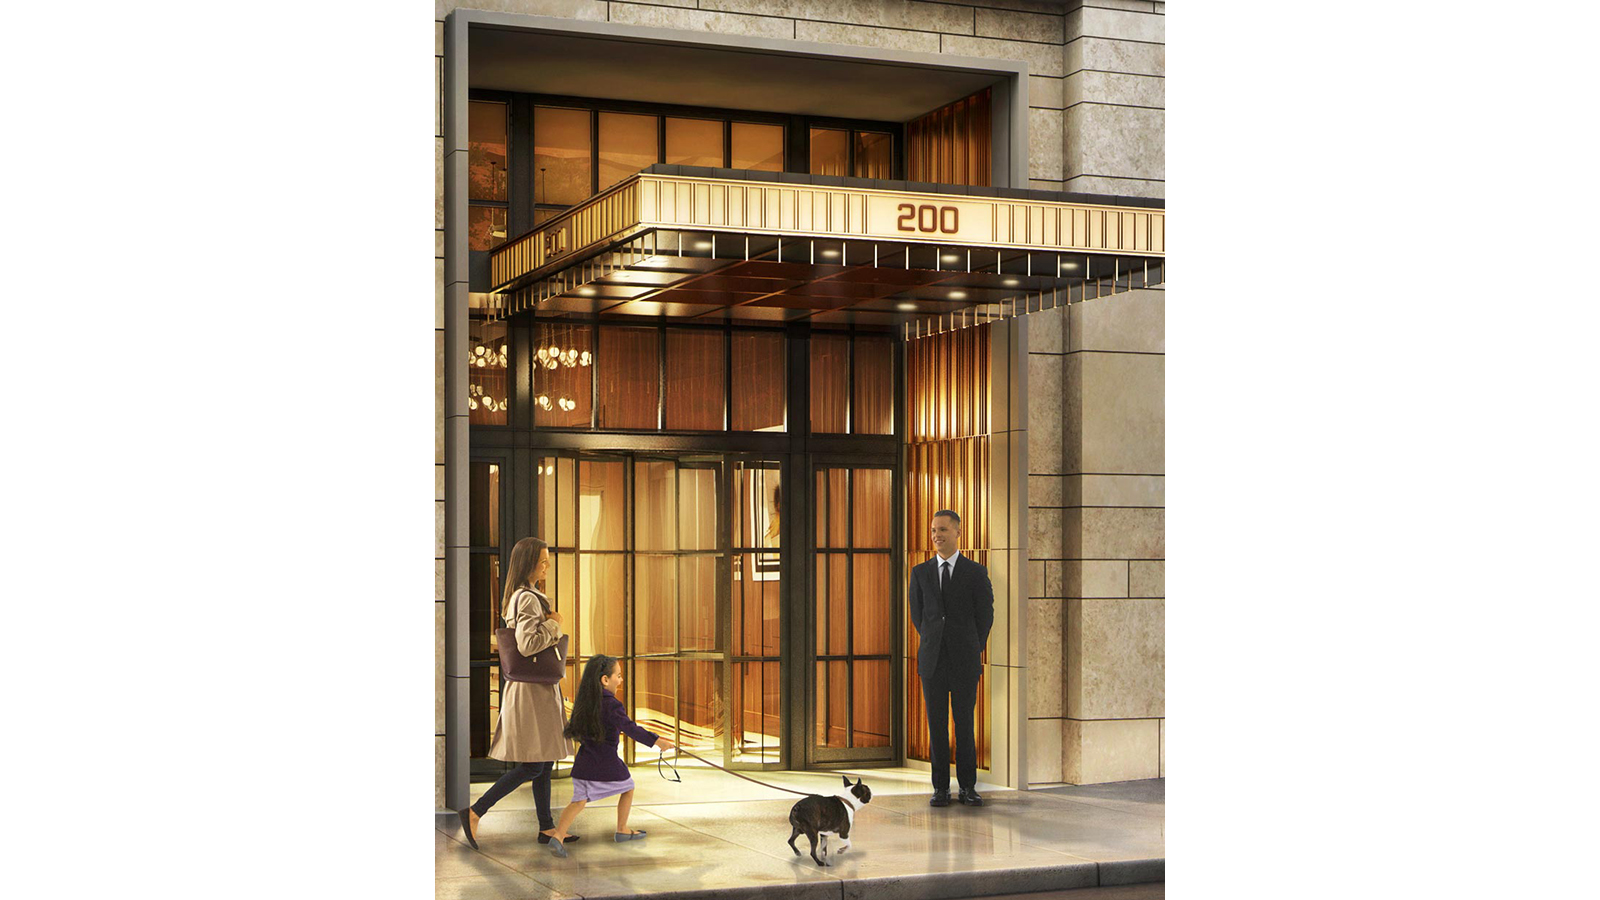 The Kent, 200 East 95th Street